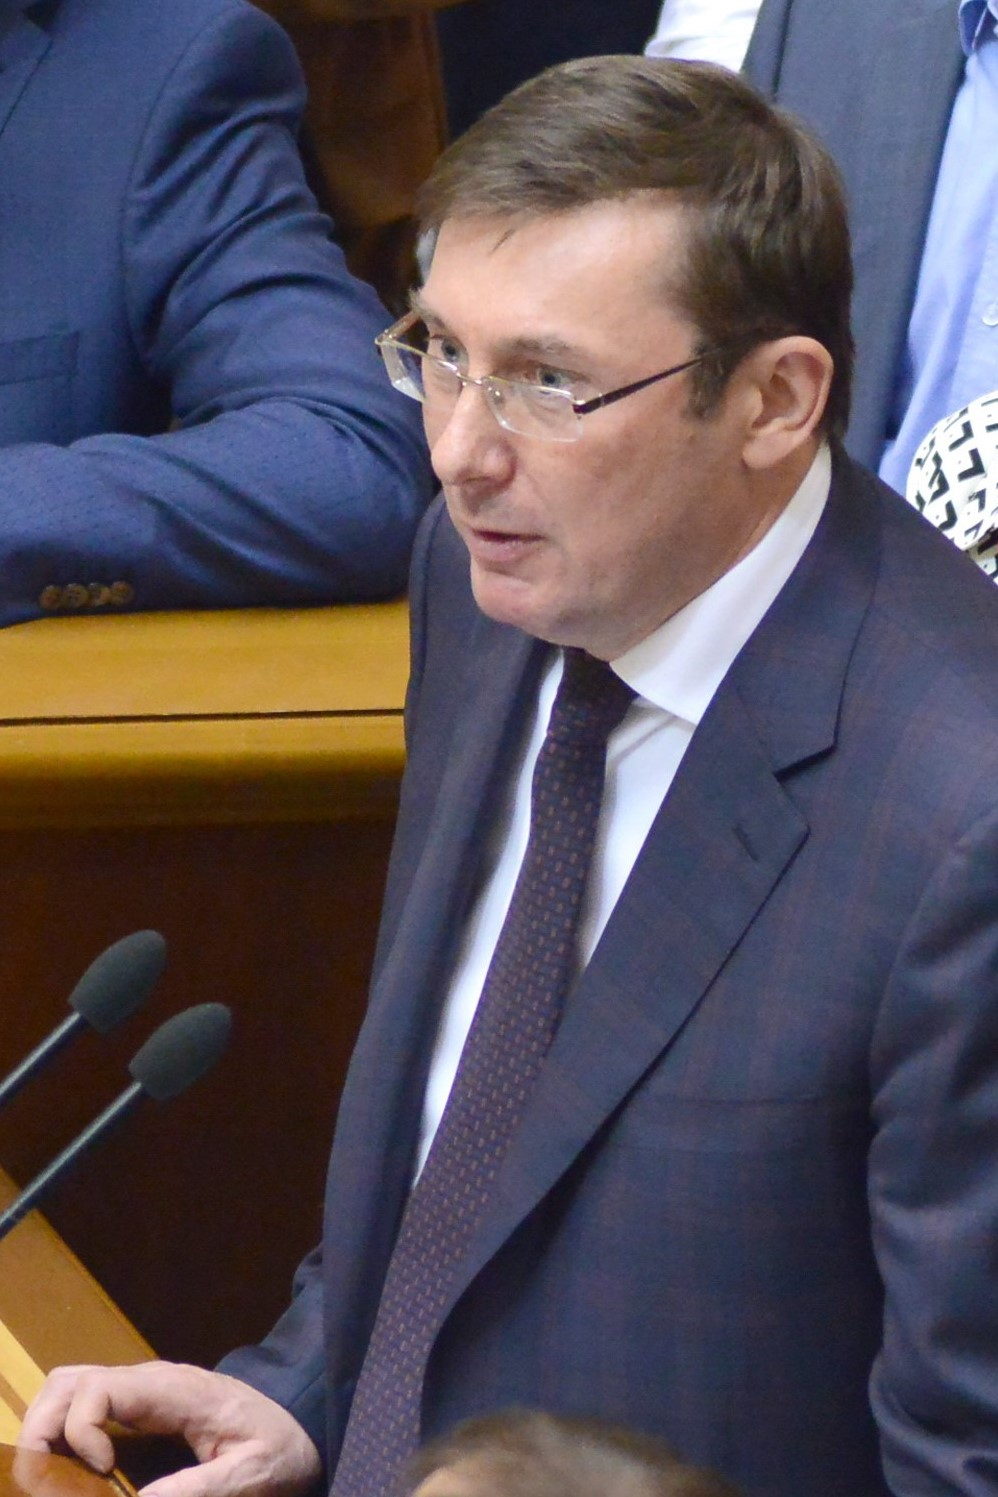 No criminal evidence found against anti-corruption prosecutor, Lutsenko says